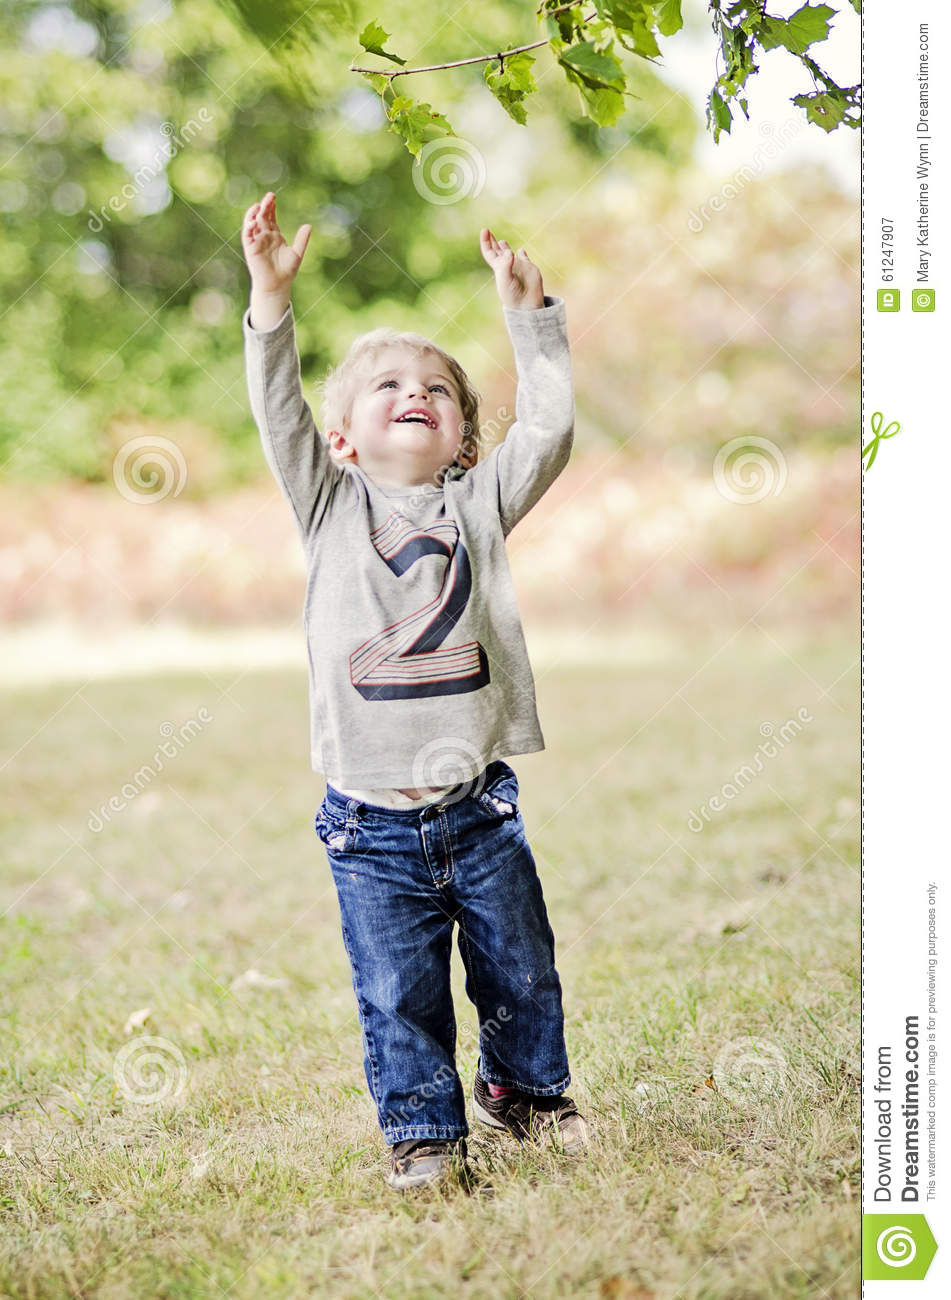 Up To 50 Off Mac Cosmetics At Nordstrom Rack: Happy Toddler Reaching Up Stock Image. Image Of Young